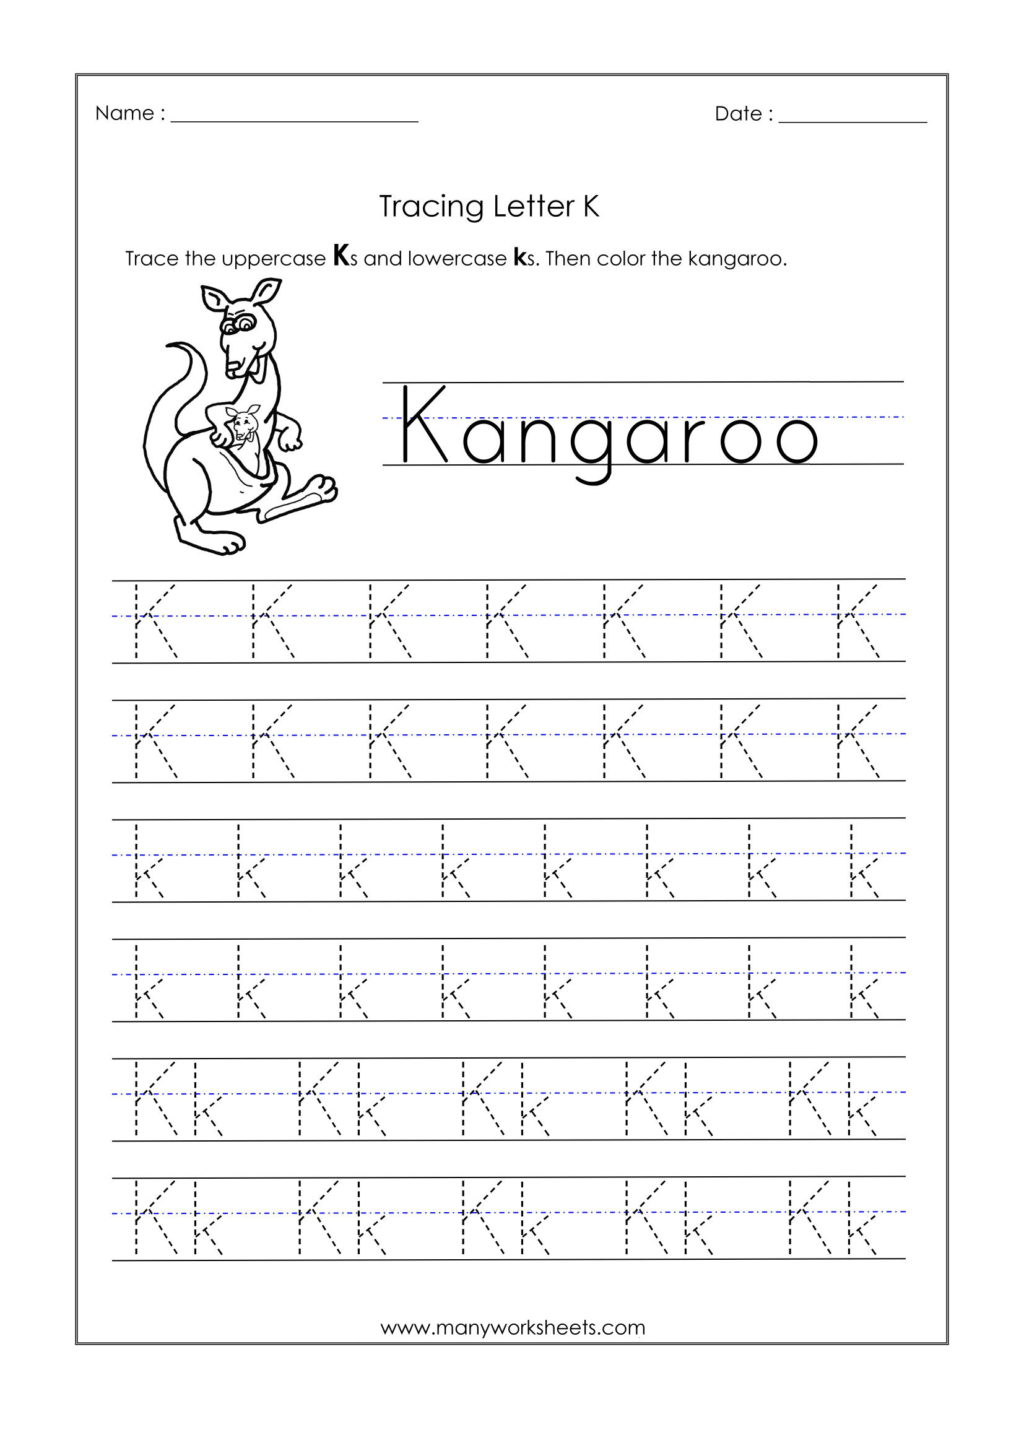 Worksheet ~ Worksheet Letter K Tracing Worksheets For